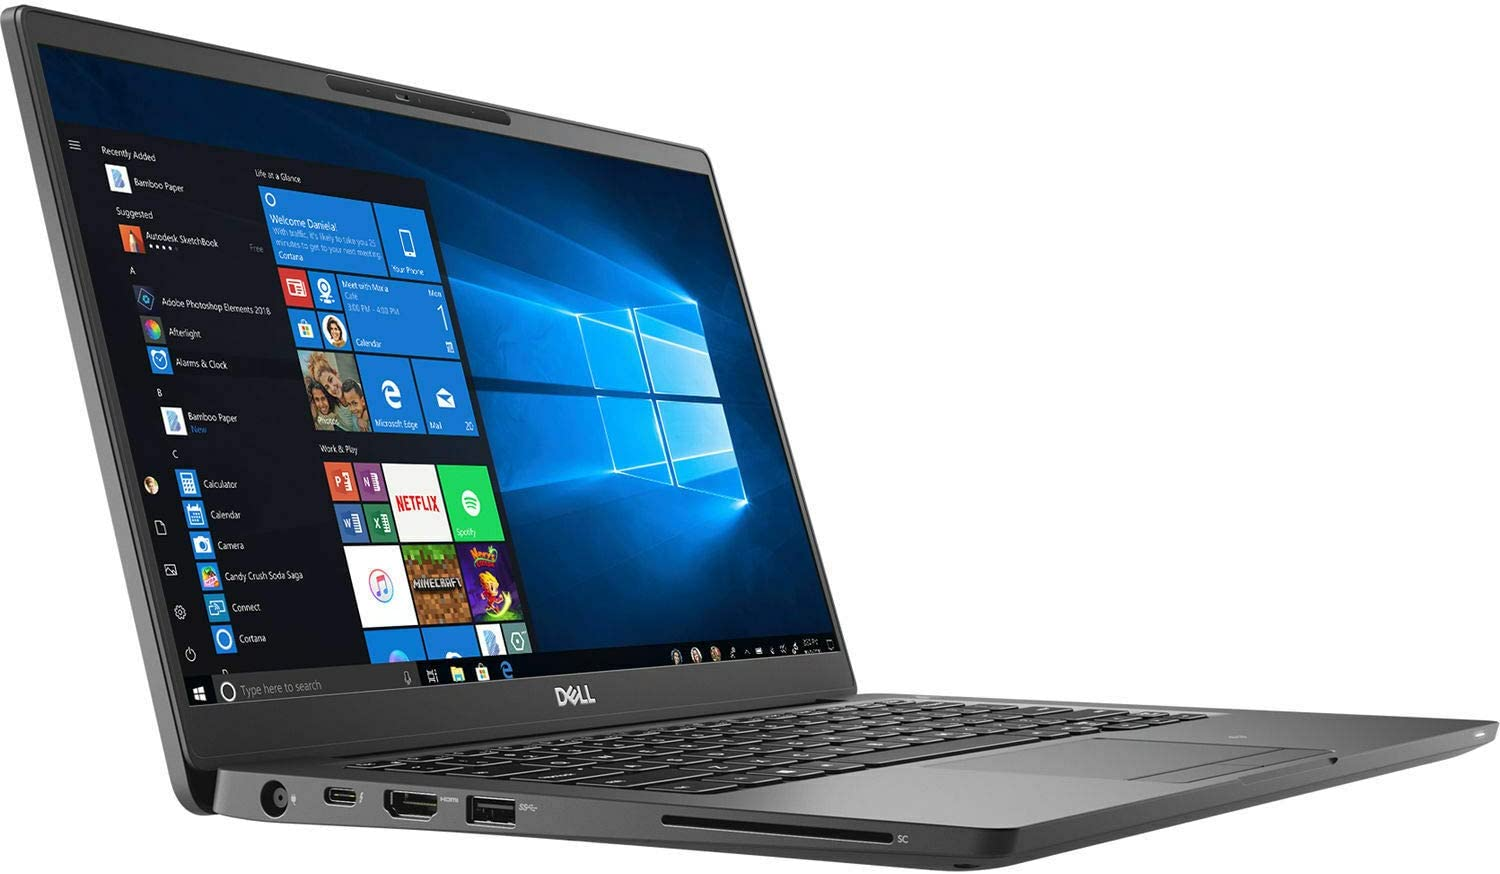 The Dell Latitude 7400 Laptop travel product recommended by Nick Sylvester on Lifney.